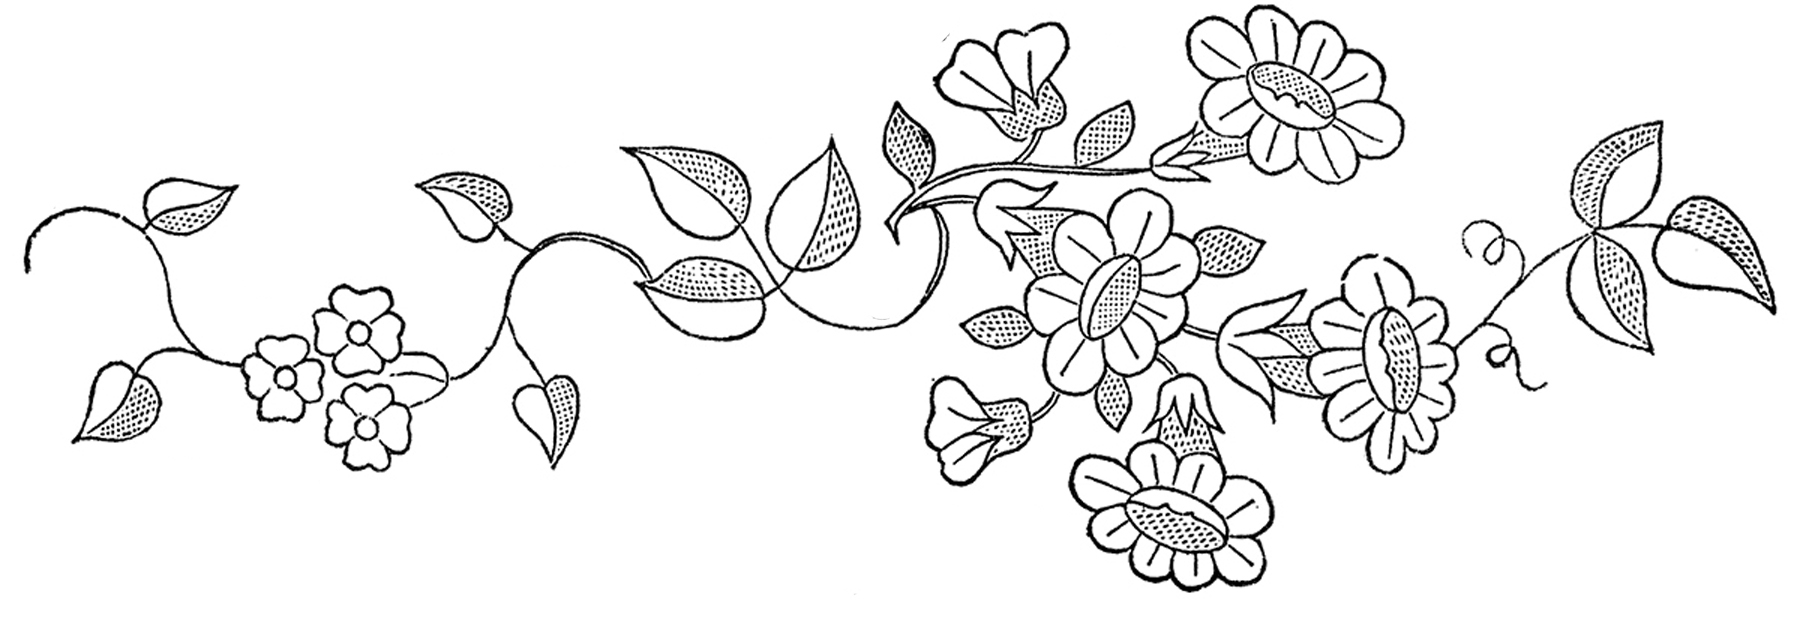 How To Make An Embroidery Pattern Hand Embroidery Patterns Digitemb